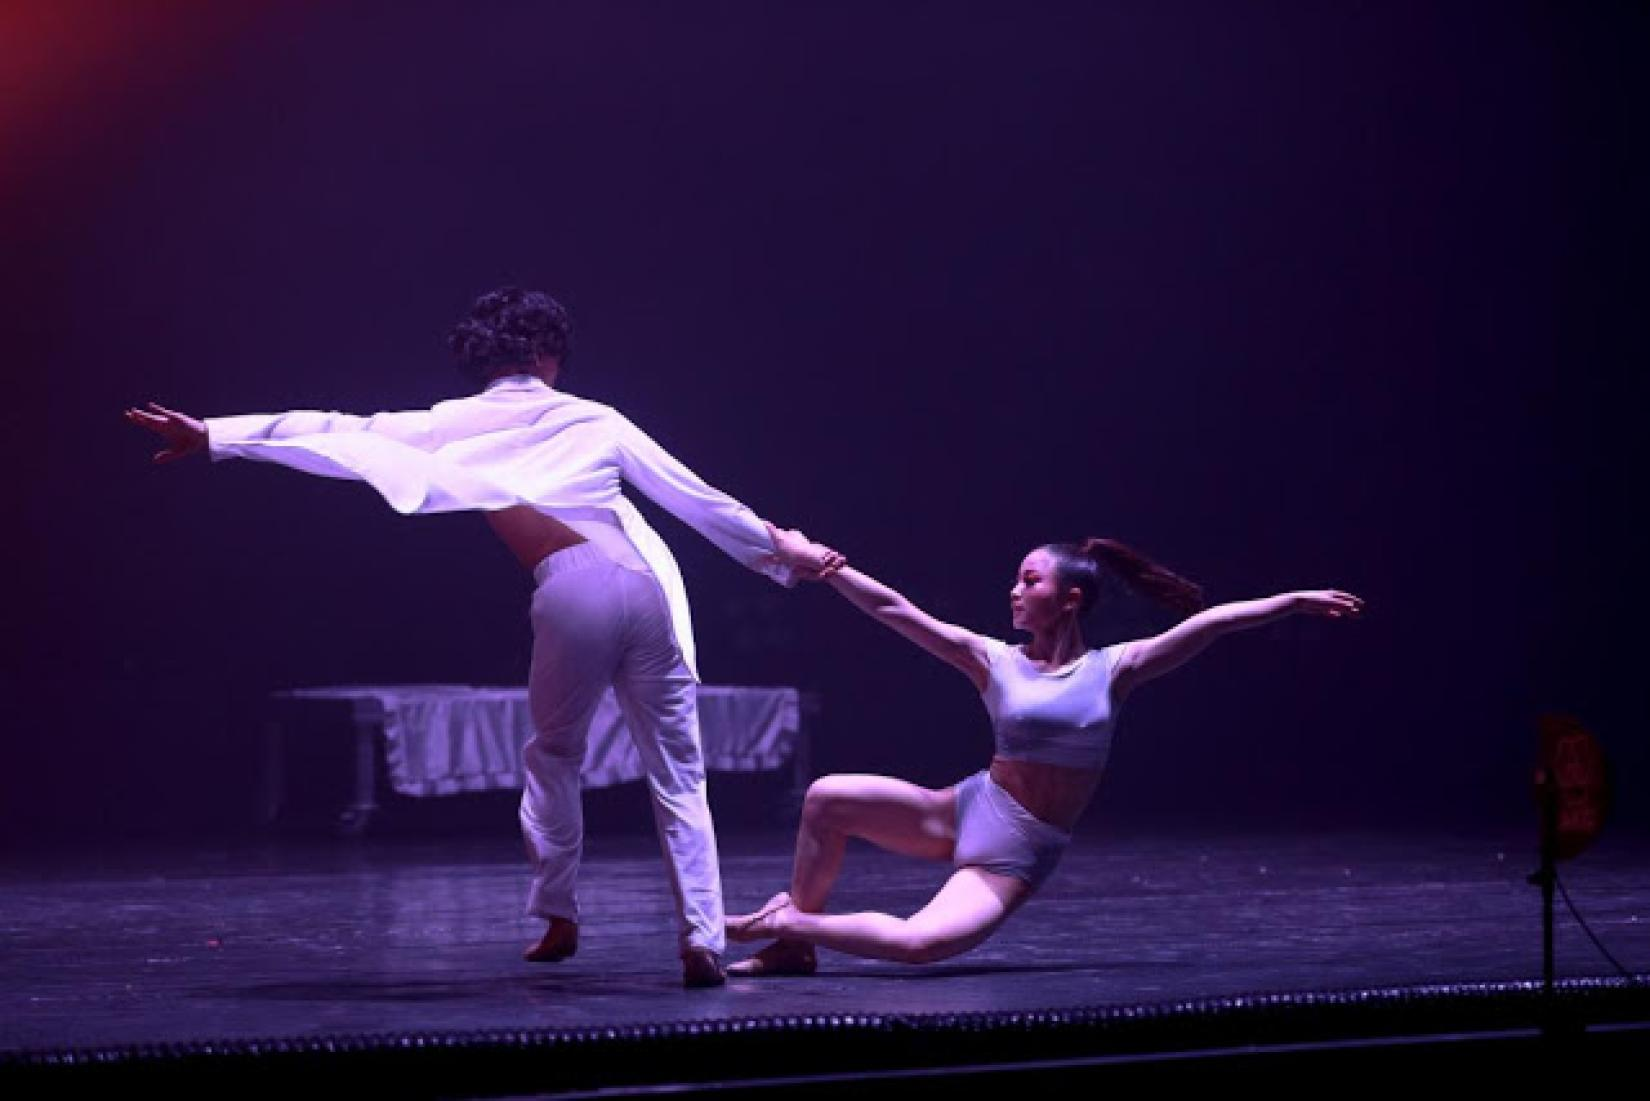 Two dancers perform a pas de deux during Life Element – O2, a modern ballet production staged in Ulaanbaatar, Mongolia, to call for action against air pollution.